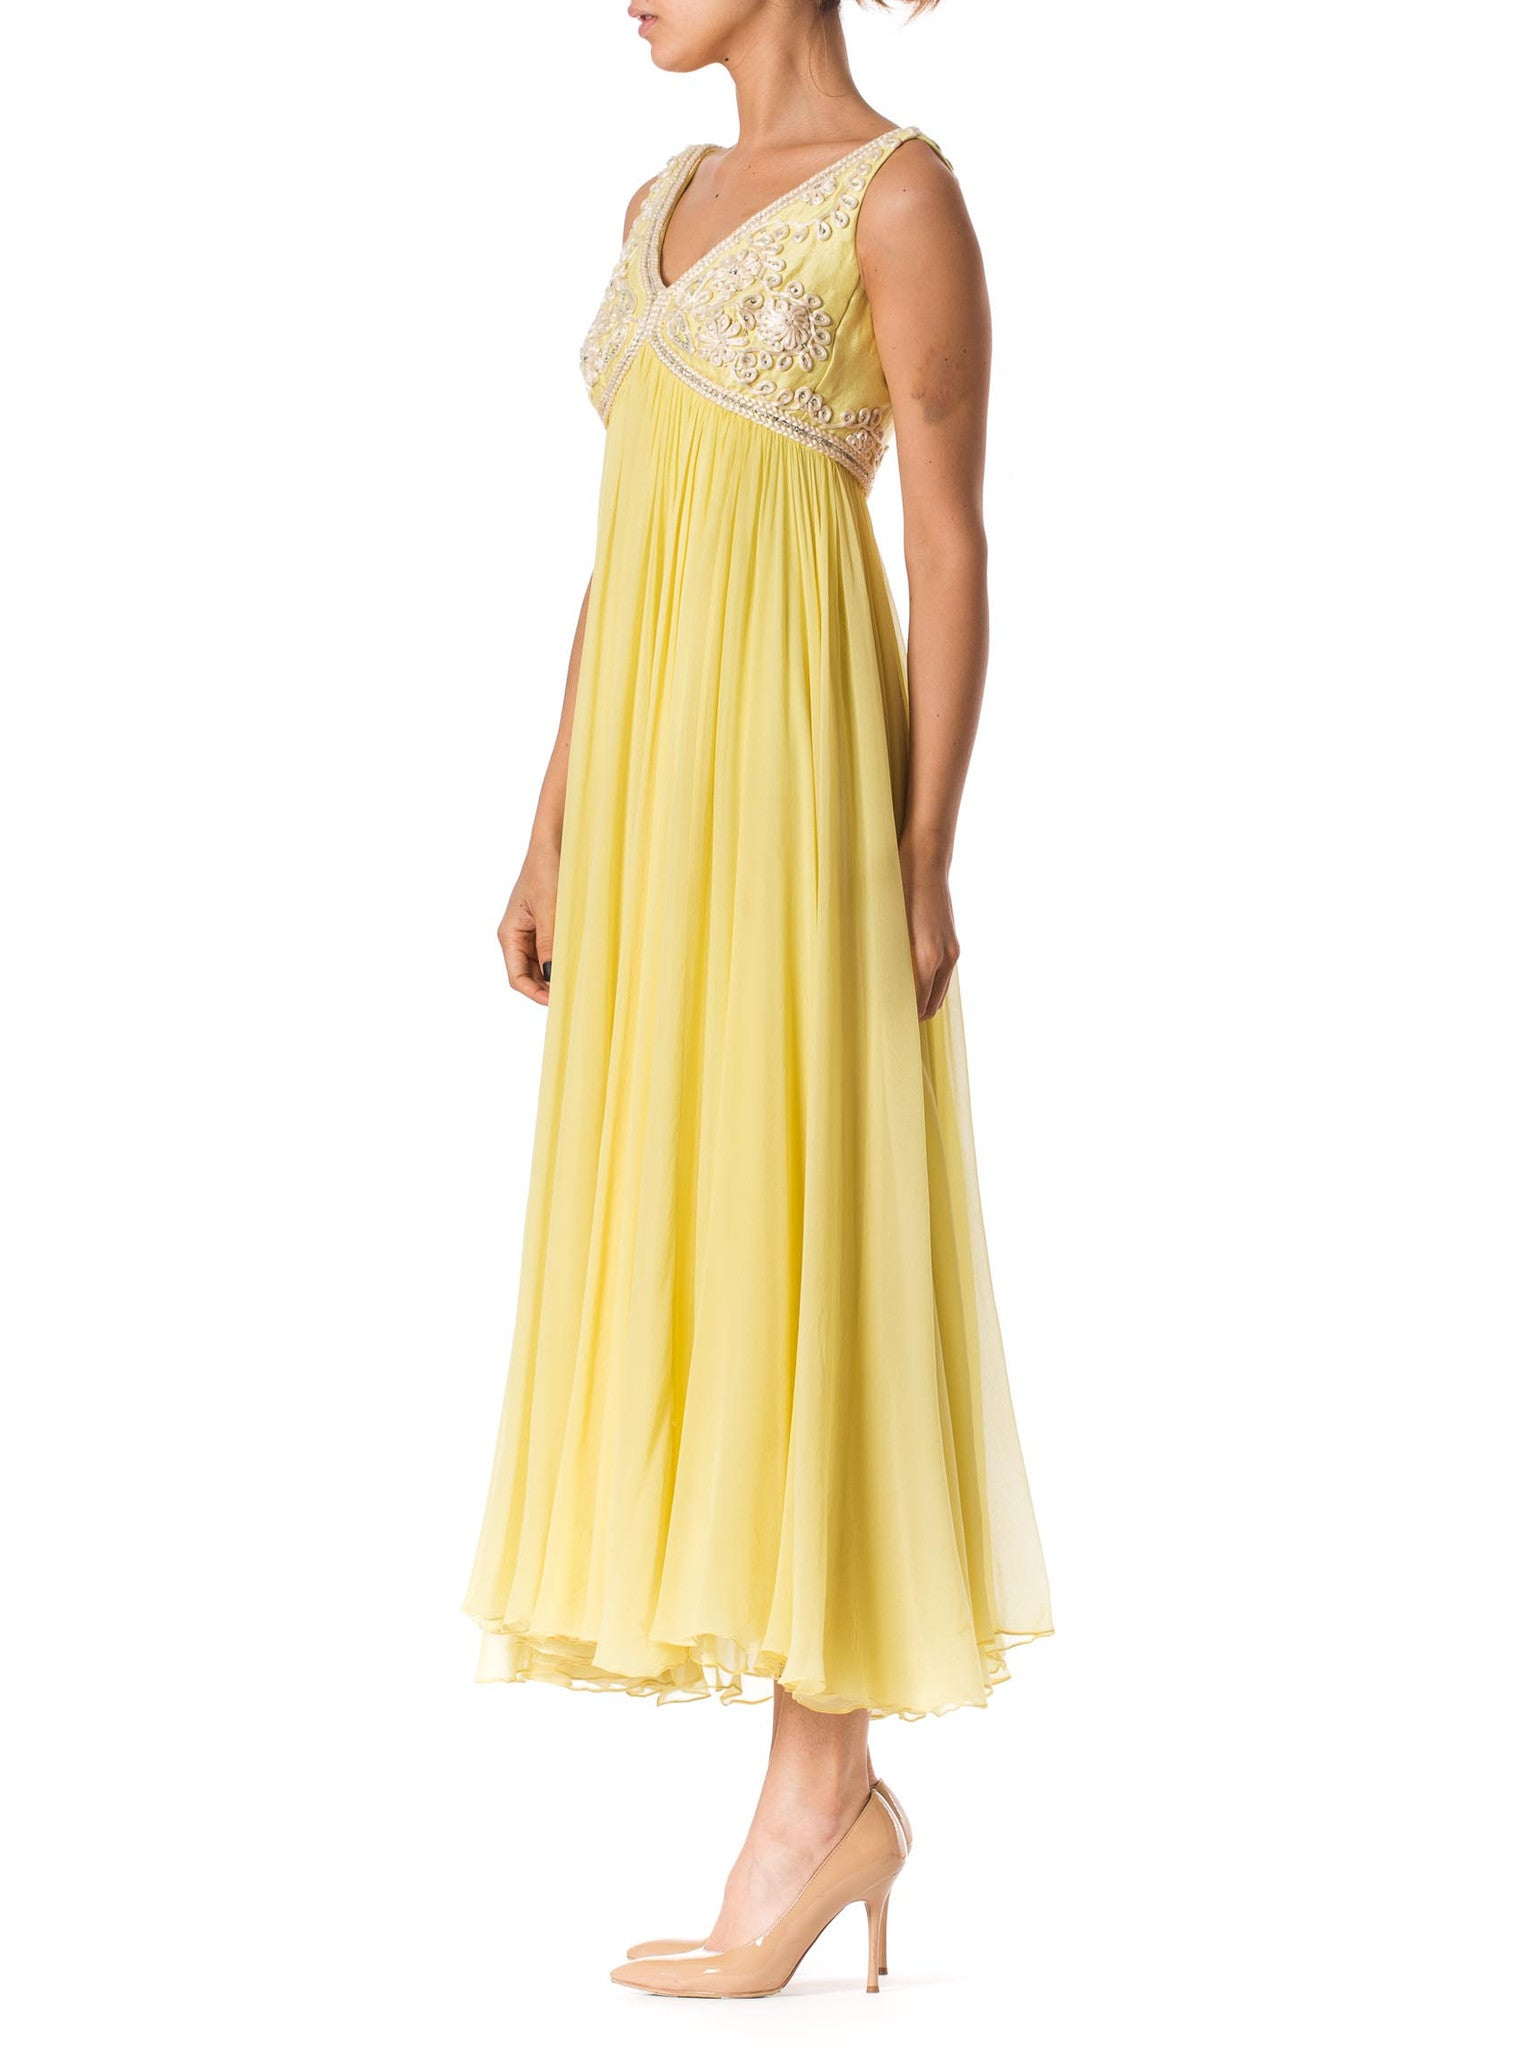 1960S Lemmon Yellow Beaded Silk Chiffon Empire Waist Gown With Matching Cropped Vest